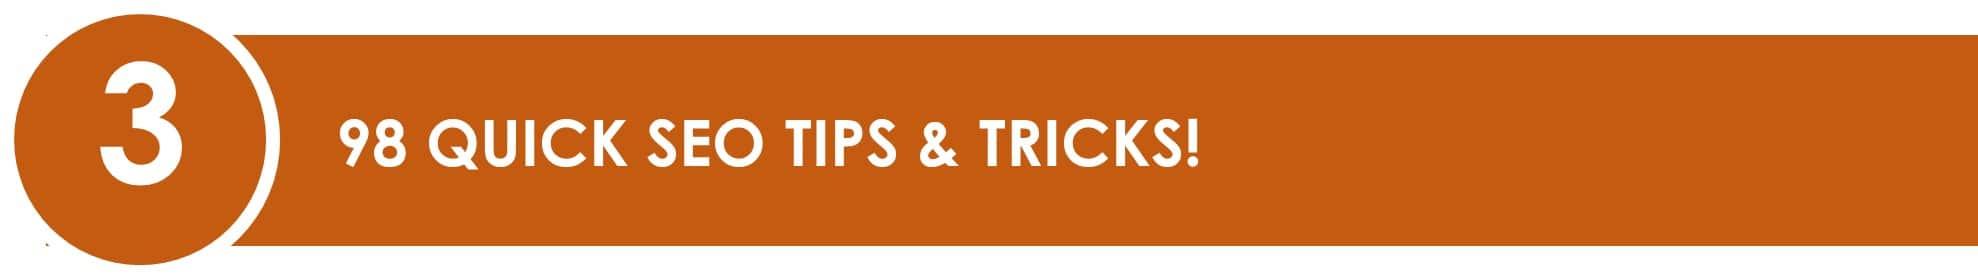 98_Quick_SEO_Tips_and_Tricks